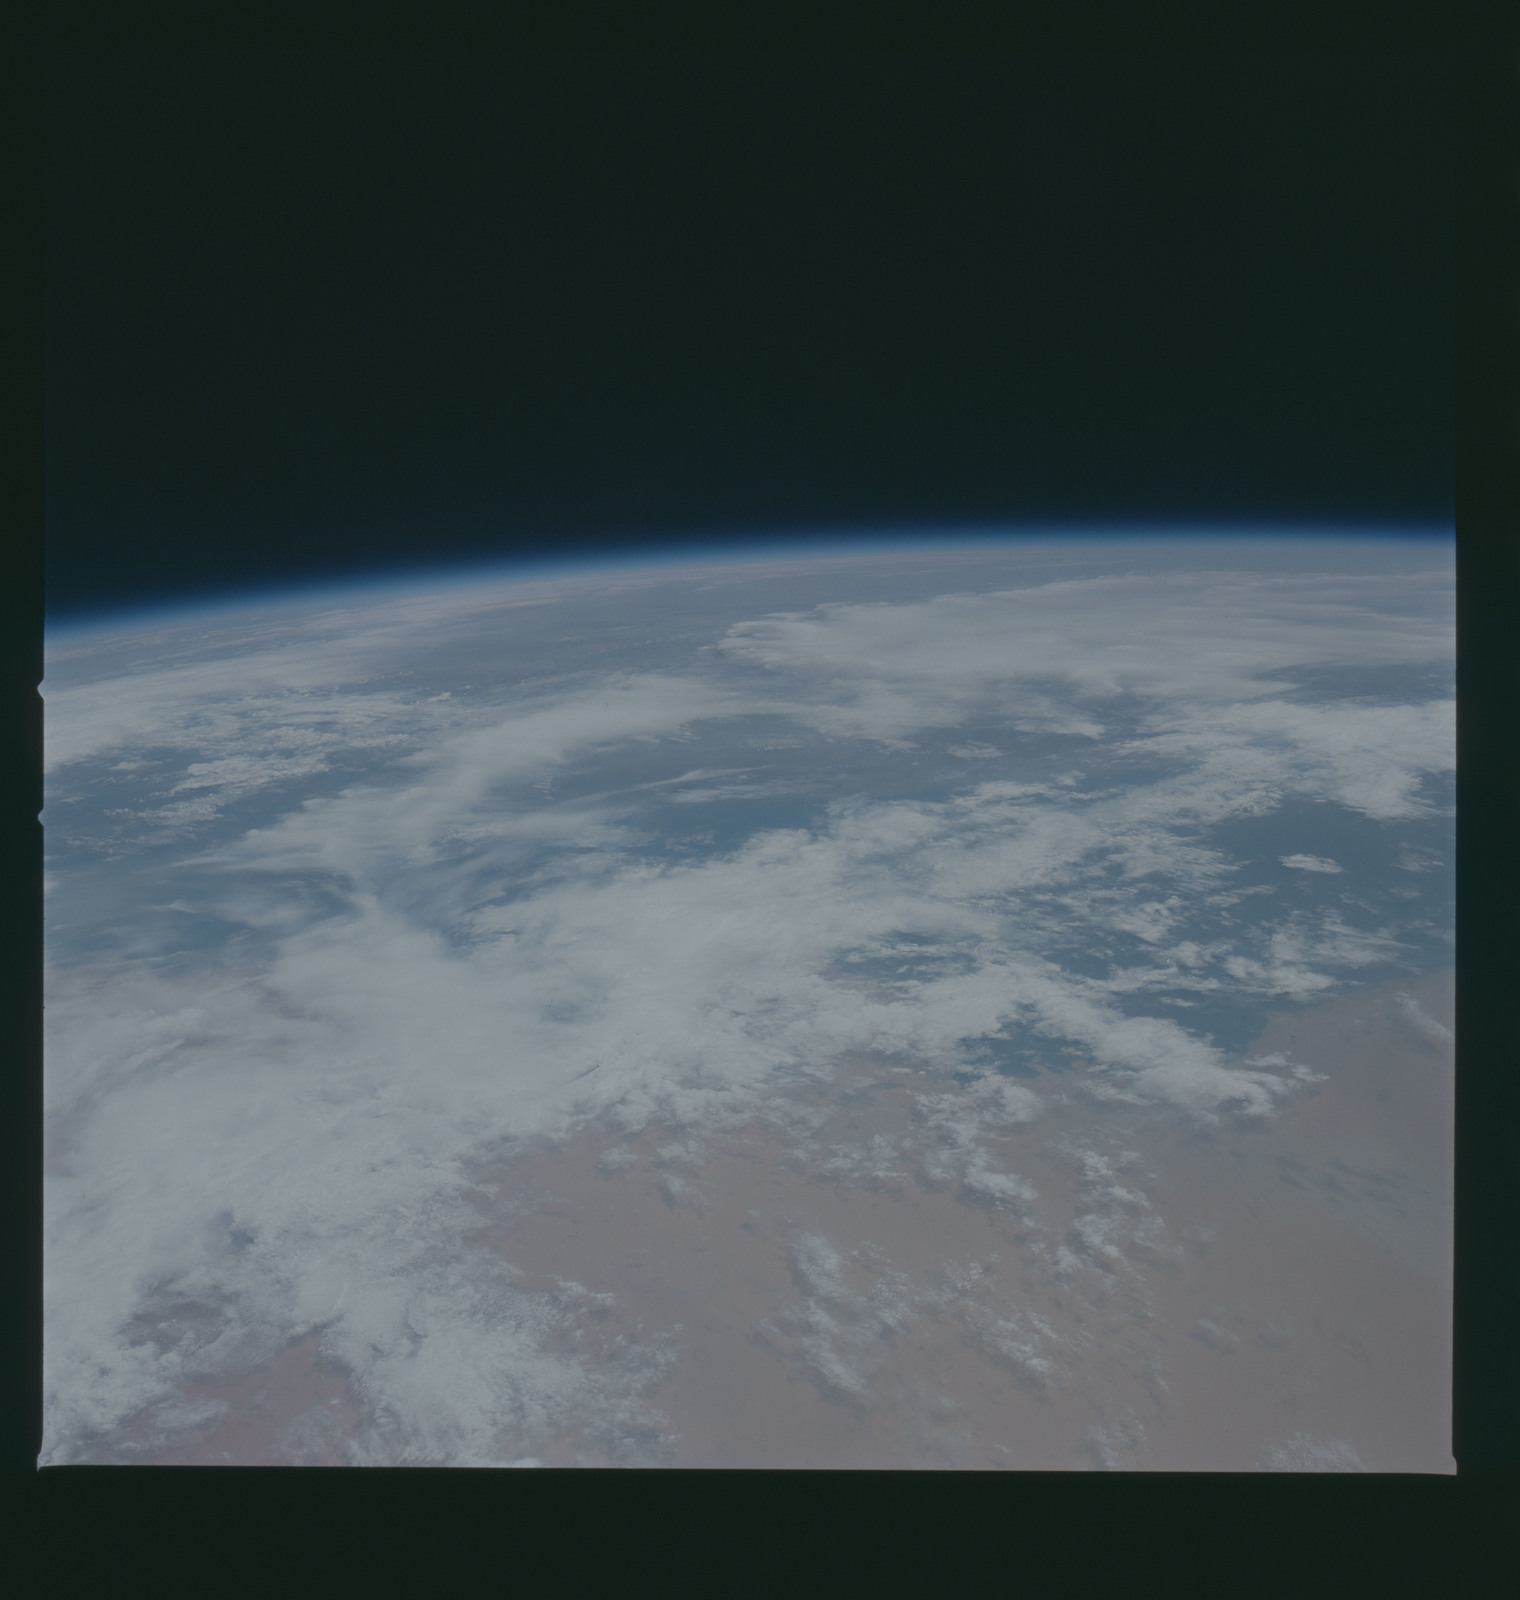 S37-96-071 - STS-037 - Earth observations taken from OV-104 during STS-37 mission